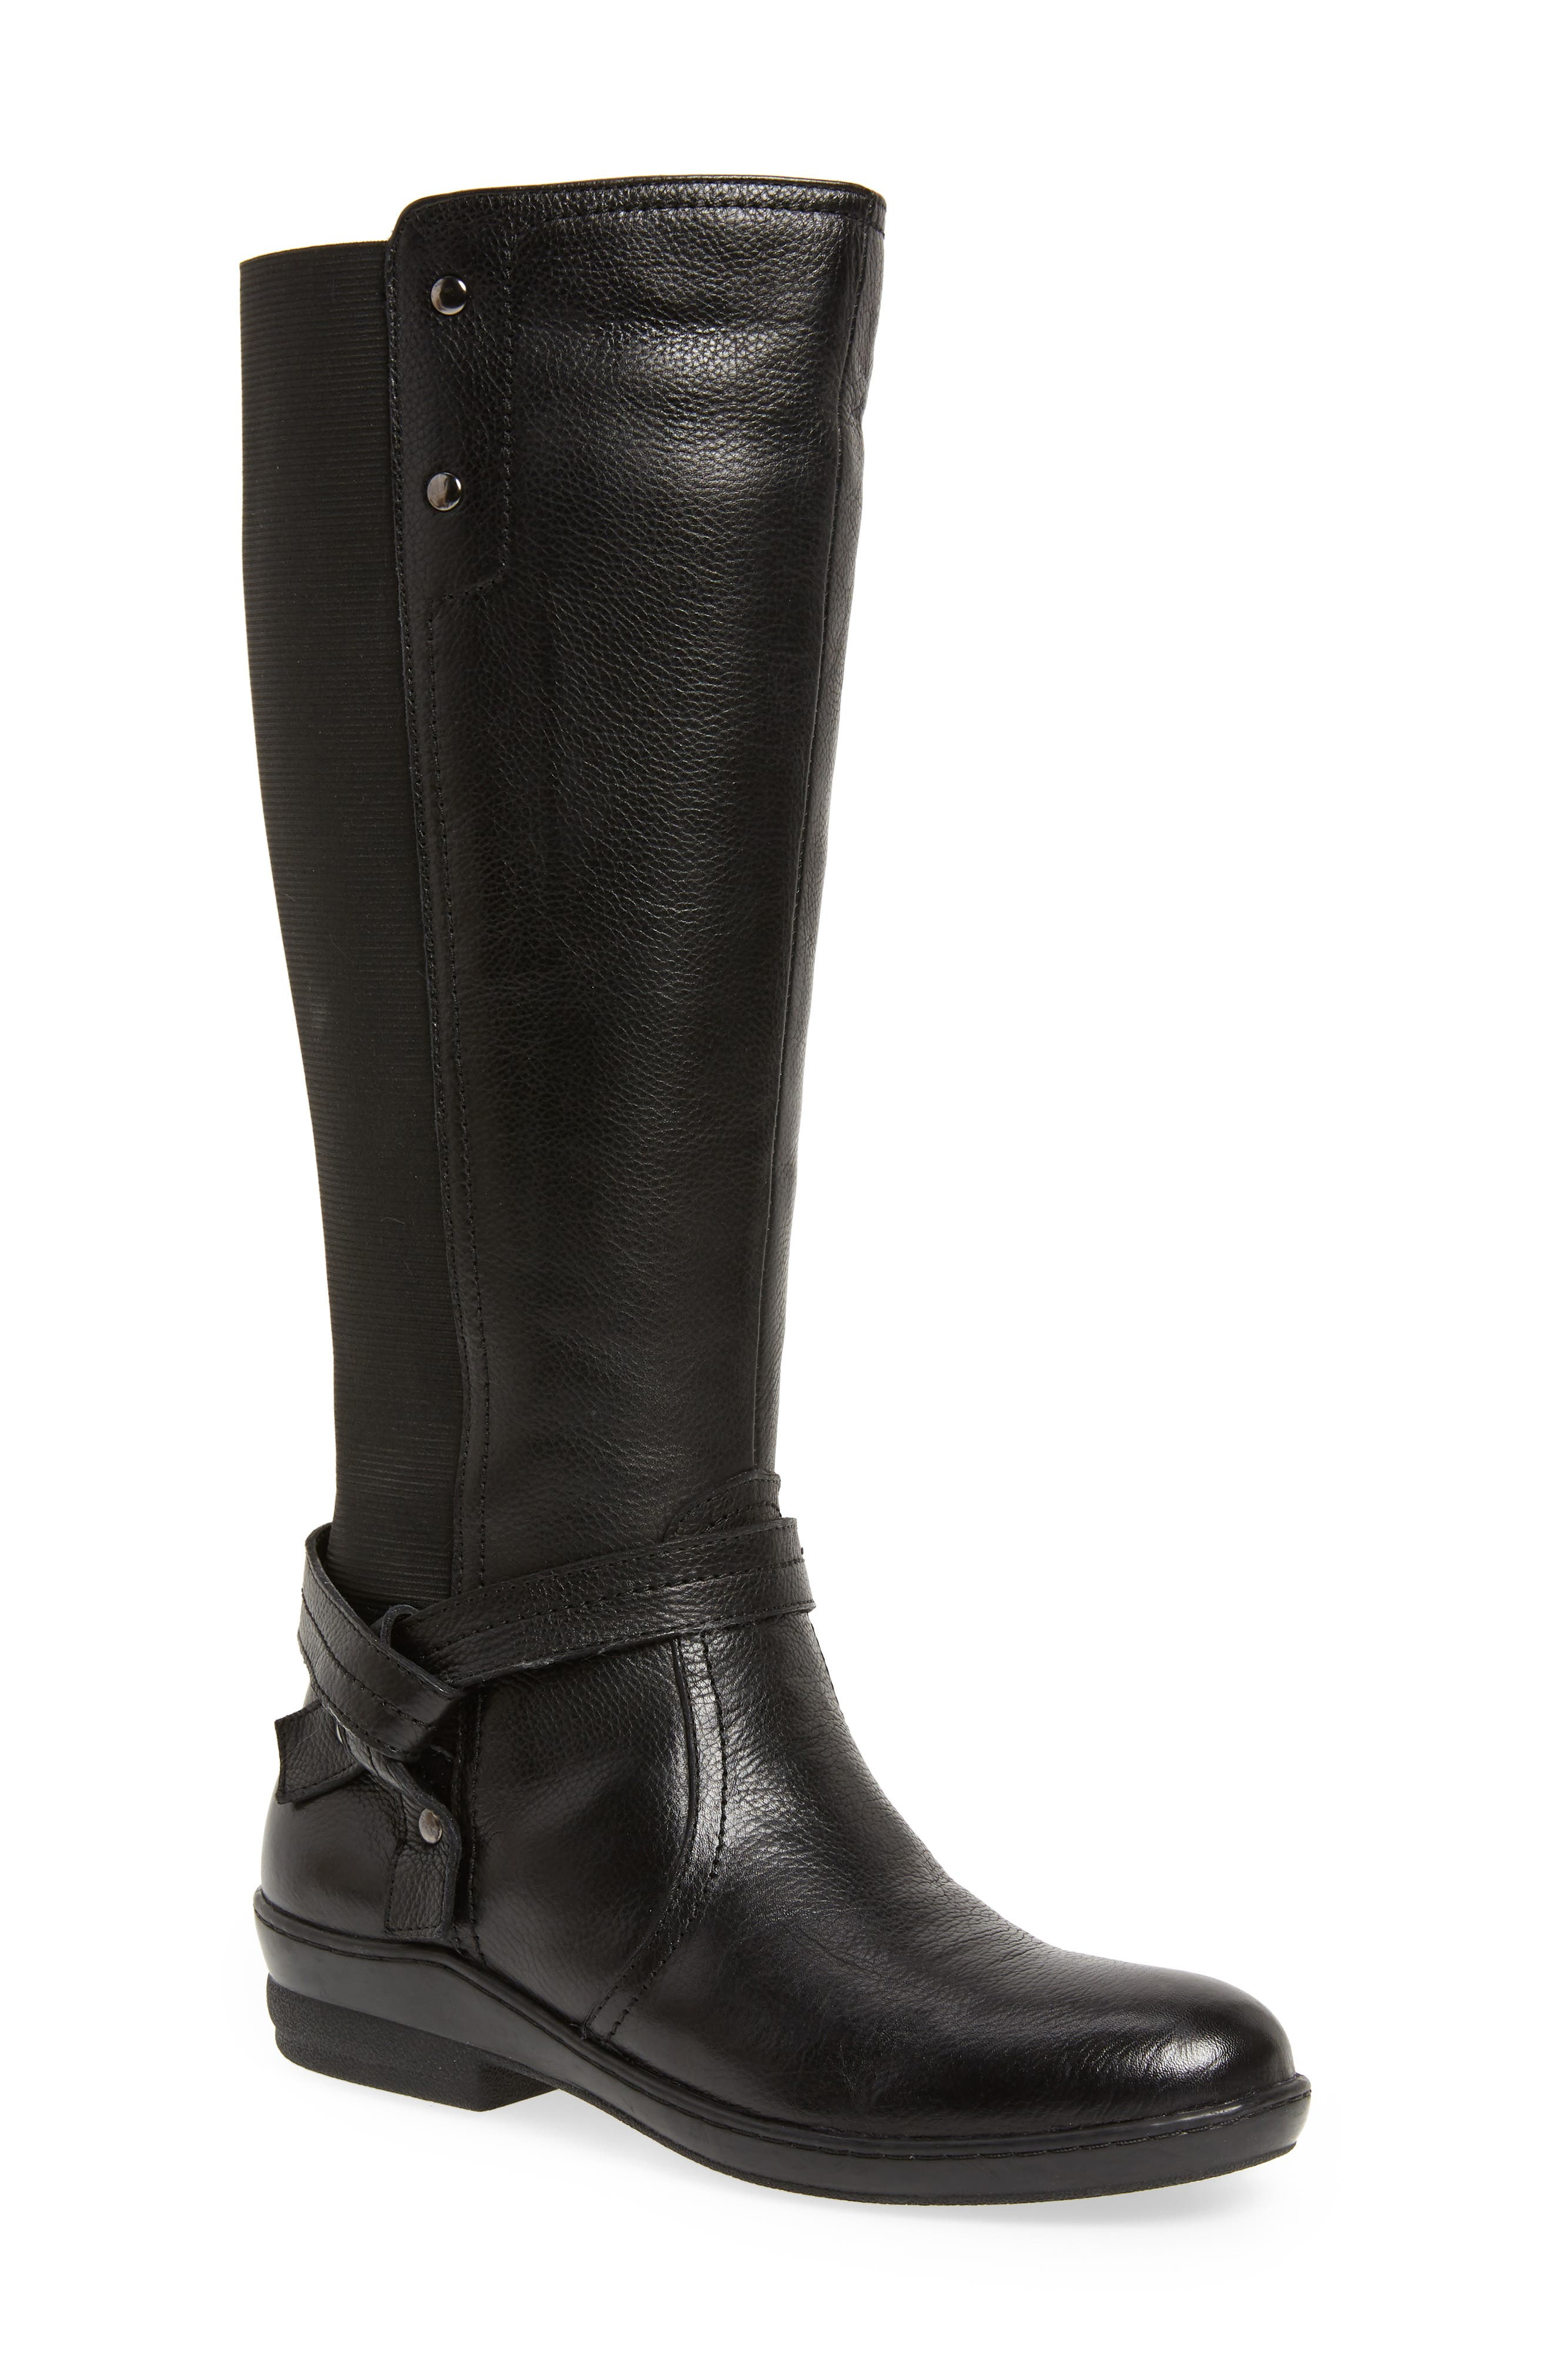 DAVID TATE Memphis 16 Stretch Back Boot, Main, color, BLACK LEATHER